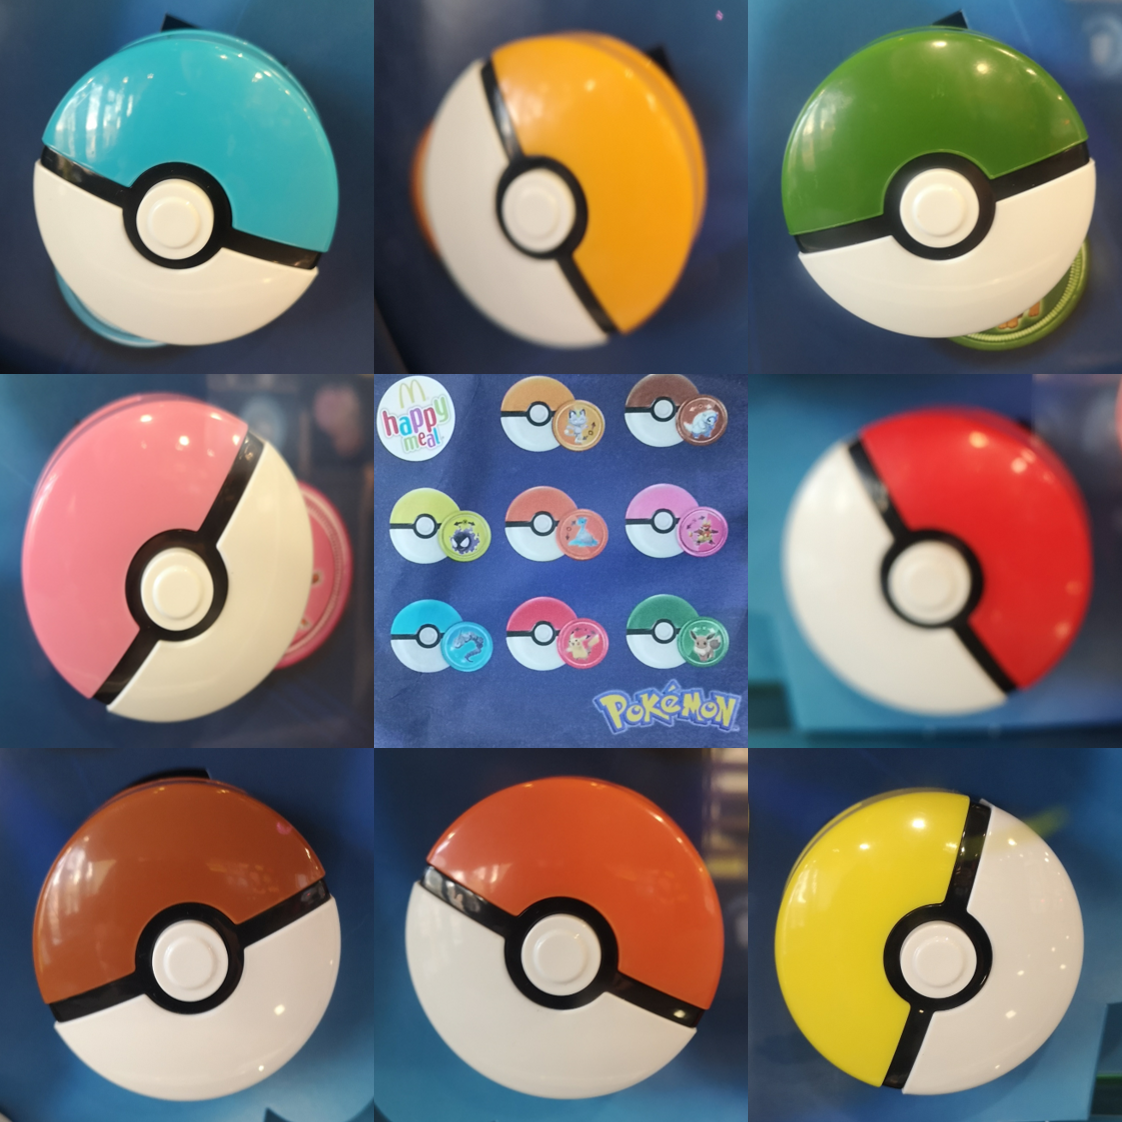 McDonalds Happy Meal Toy UK 2020 Pokemon Pokeballs Beltclip Toys + Card  Various